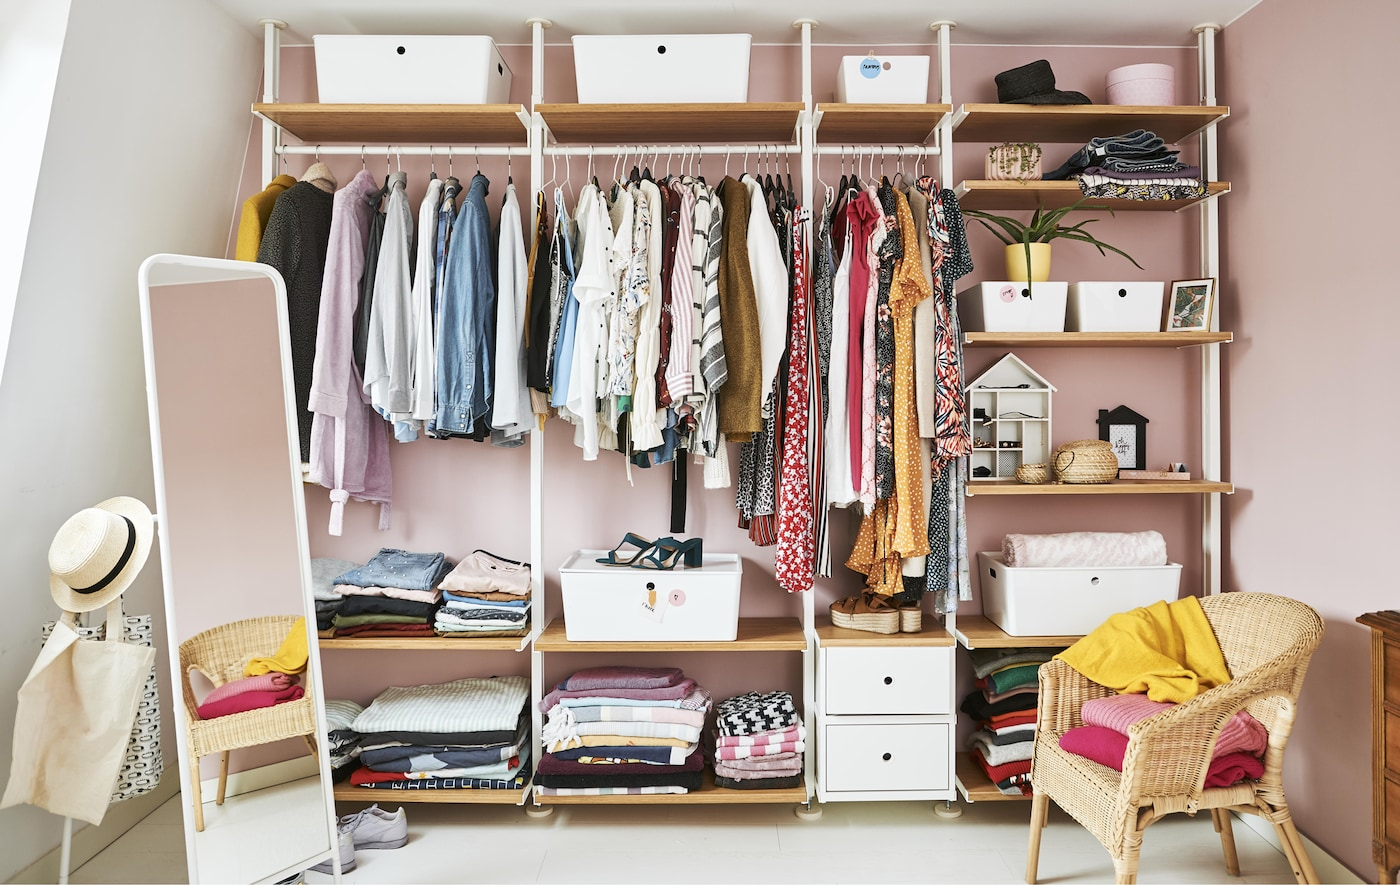 A open wardrobe full of clothes with rails, shelves and boxes set against a pink wall.